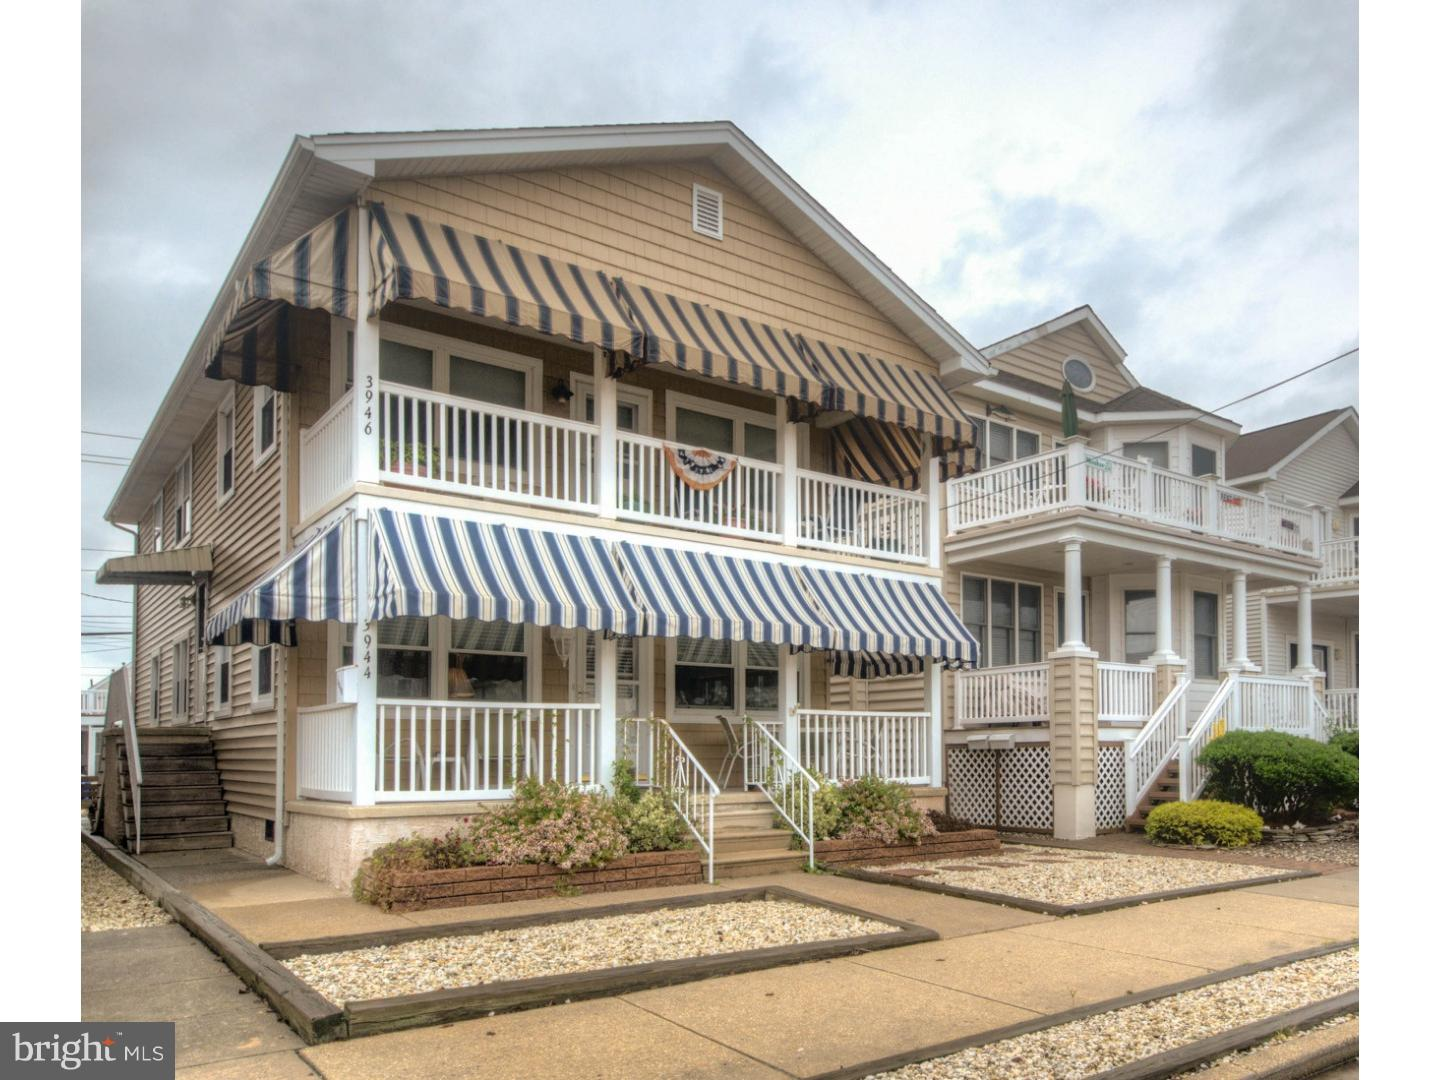 3944 ASBURY AVENUE A, OCEAN CITY, NJ 08226